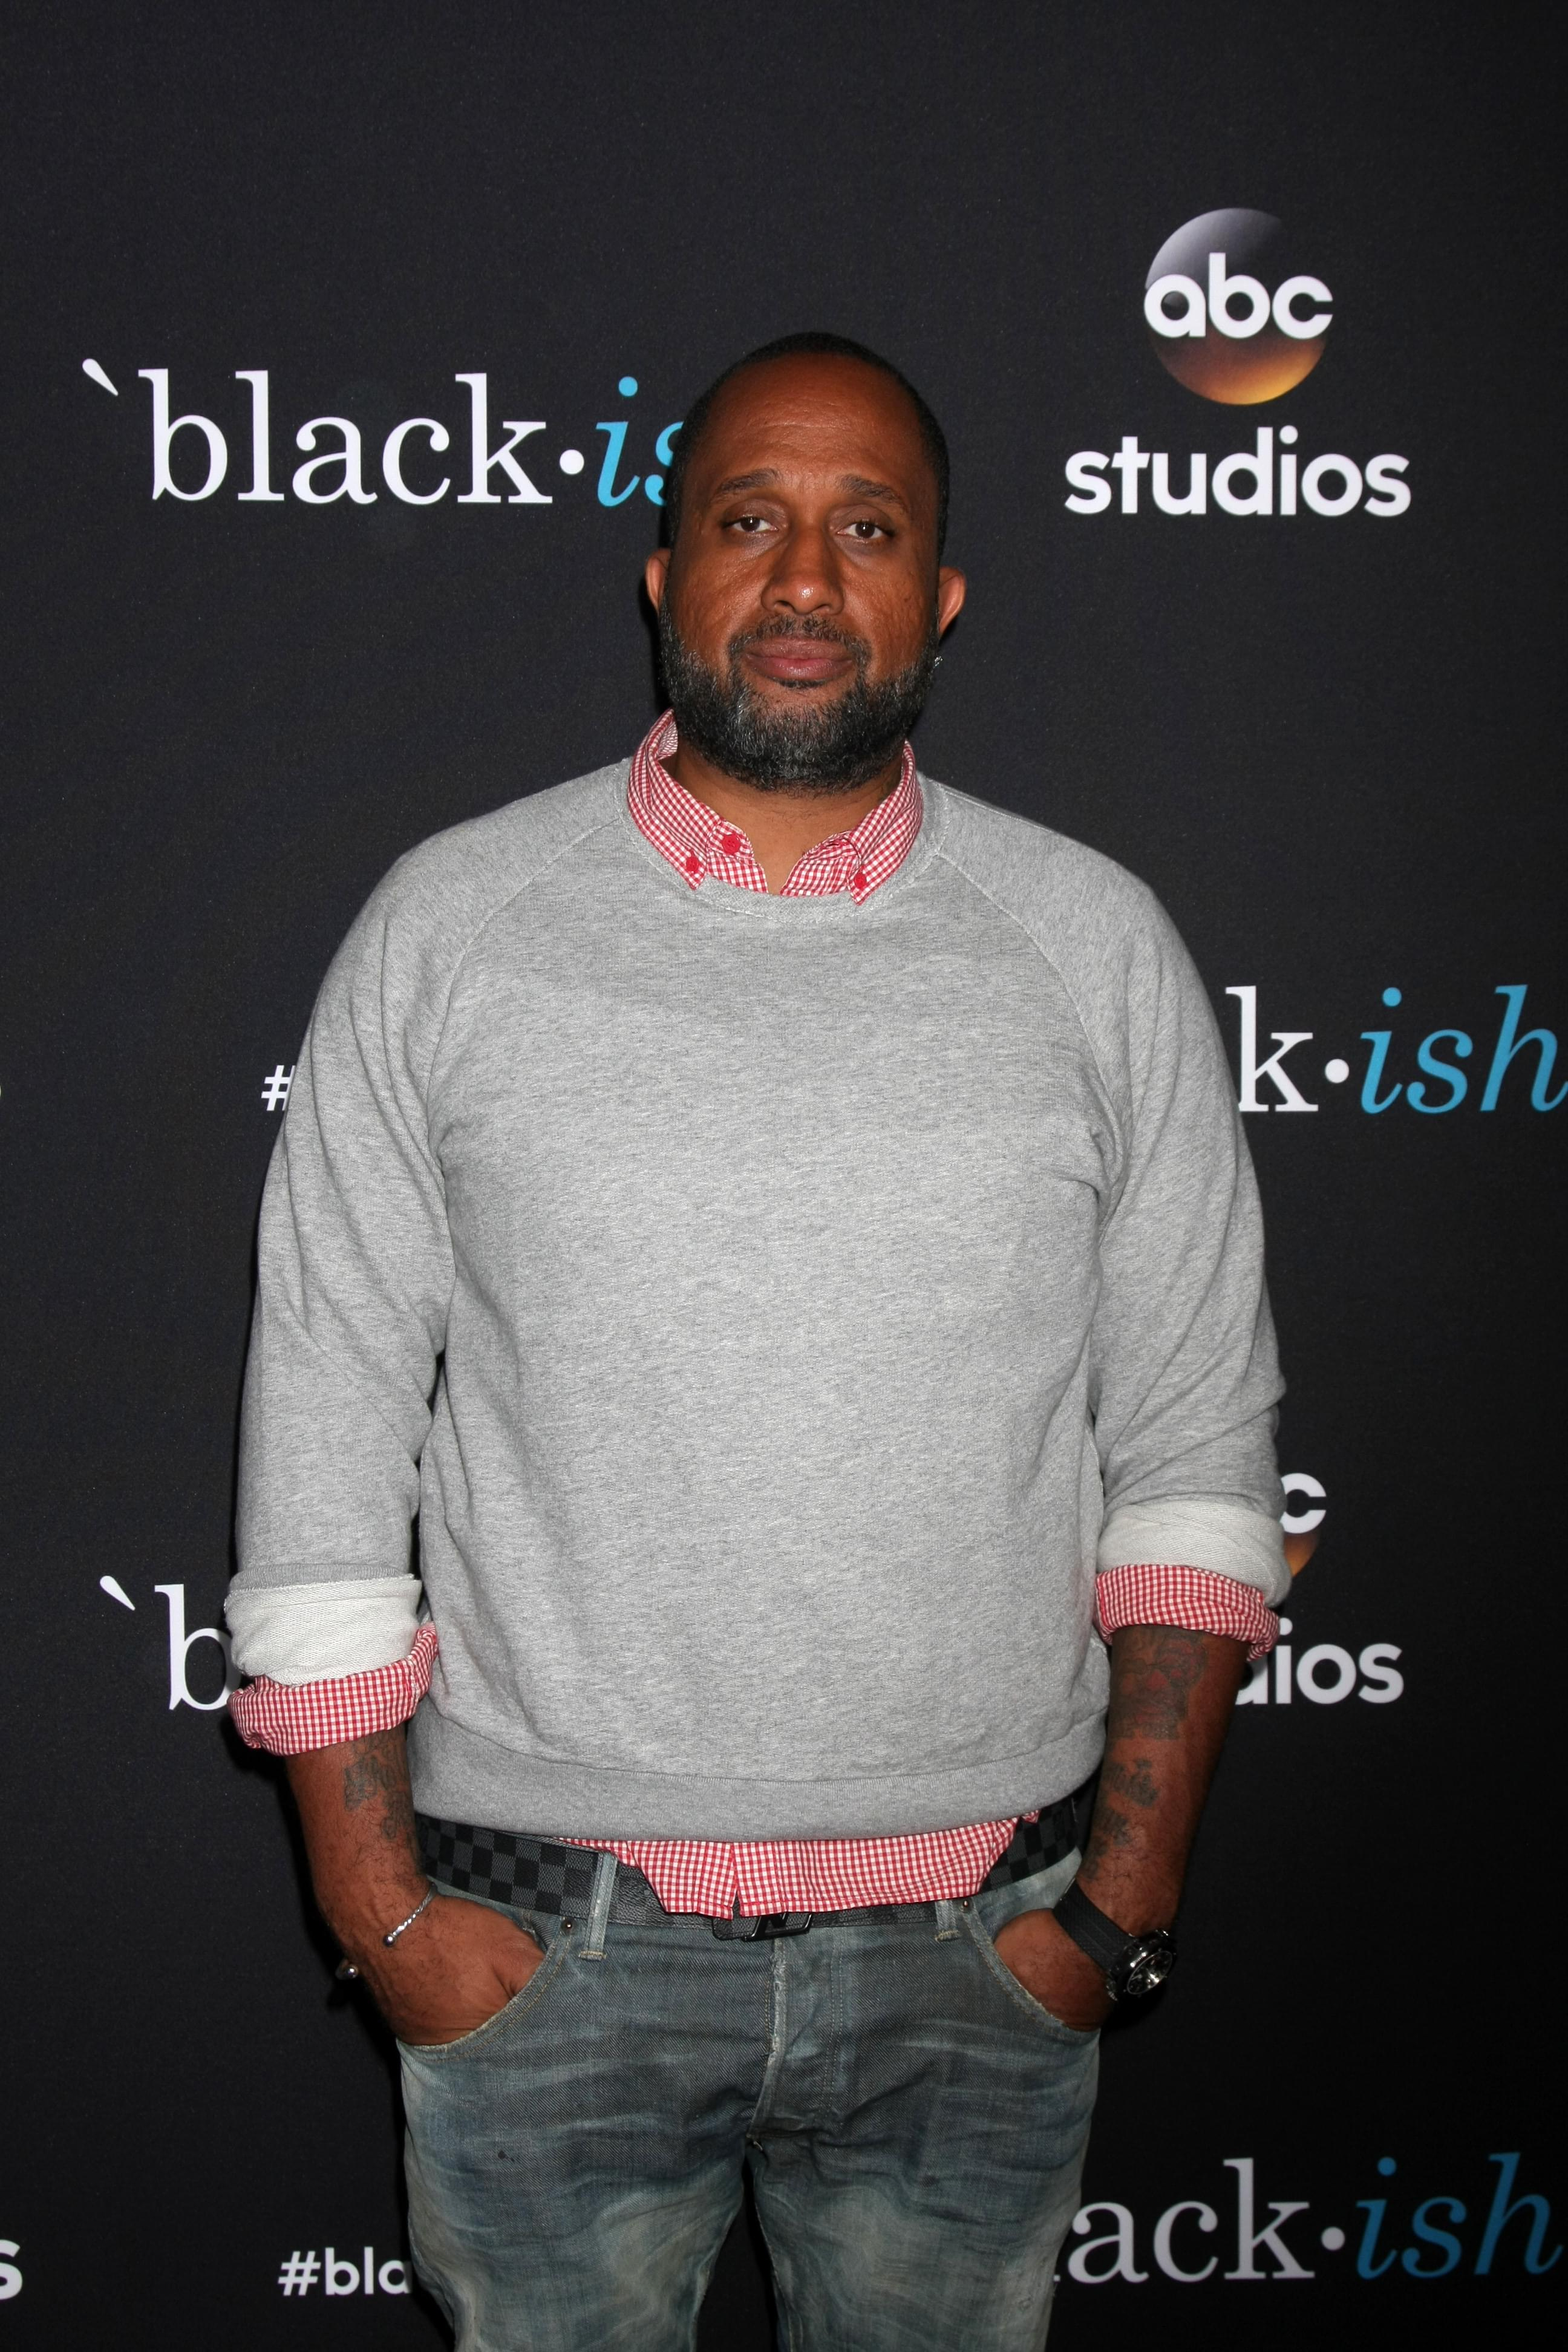 Kenya Barris and 50 Cent Team Up on New Project